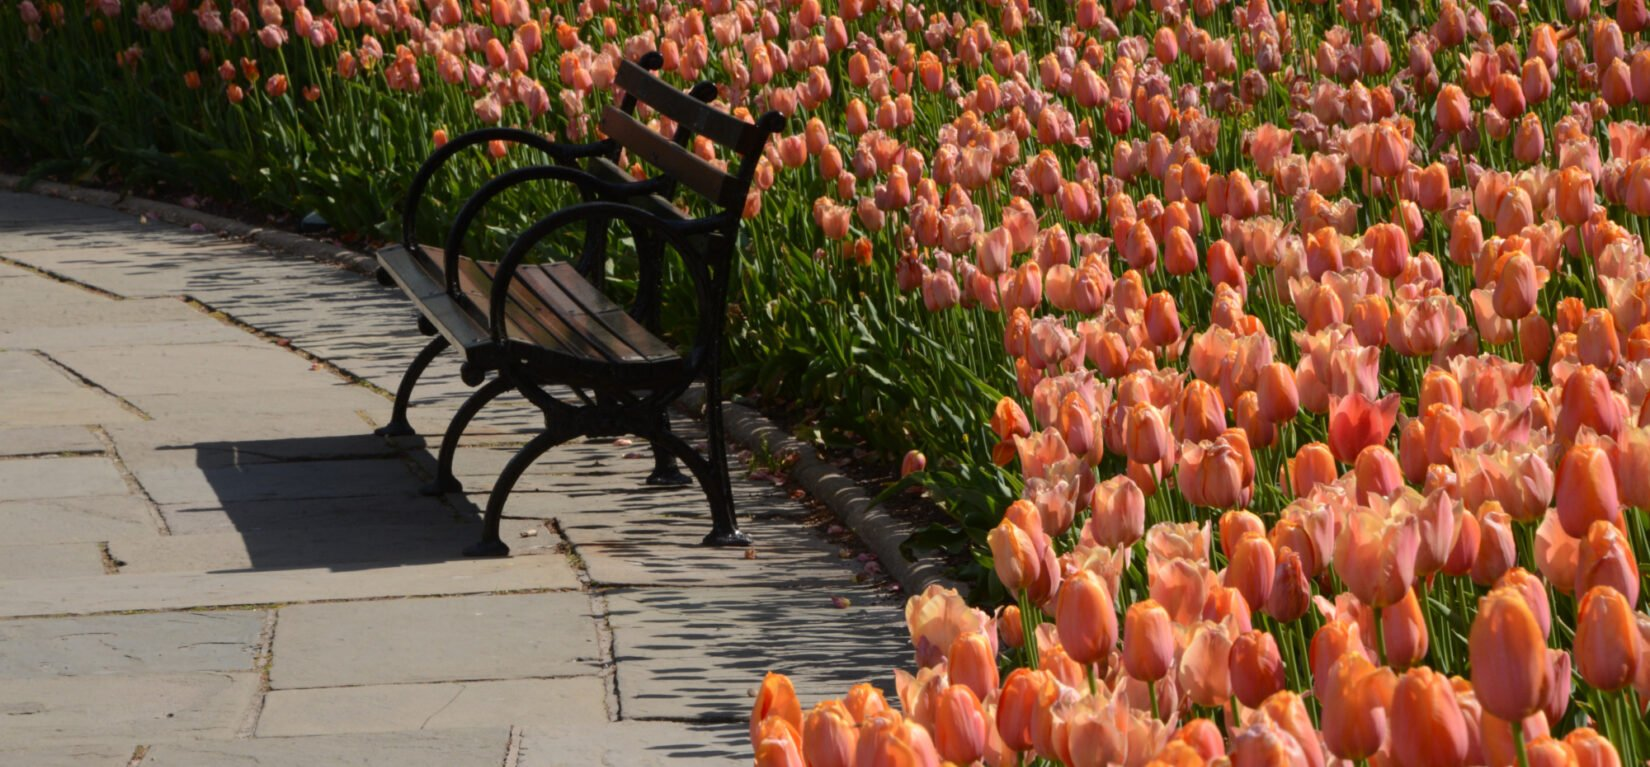 Tulips crowd behind an empty park bench in Conservatory Garden